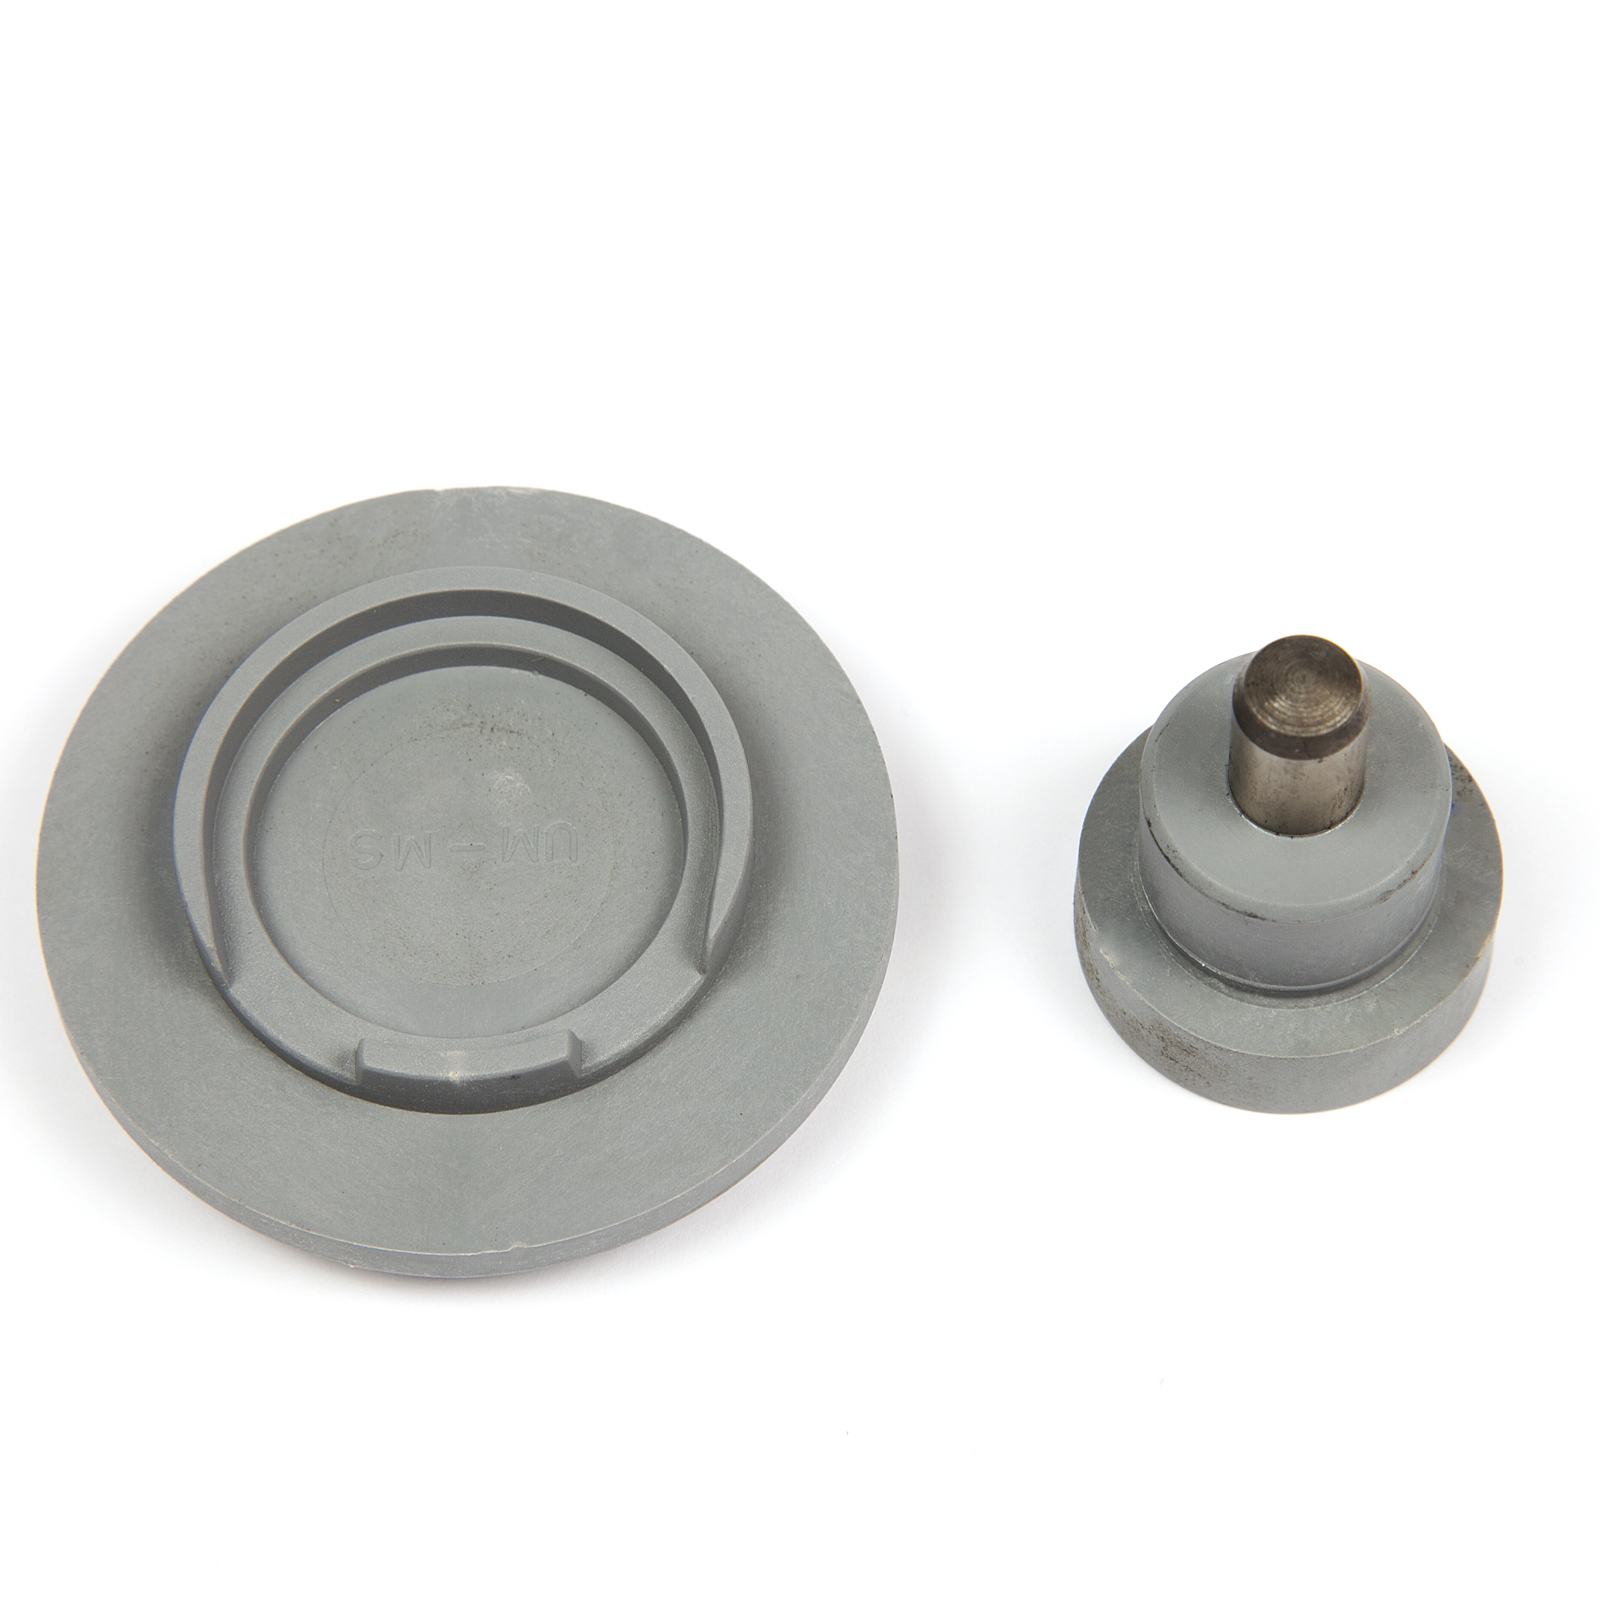 30mm Round C25 Keyringfab Assembly Tool to suit MS-30D Keyring (UM-MS)